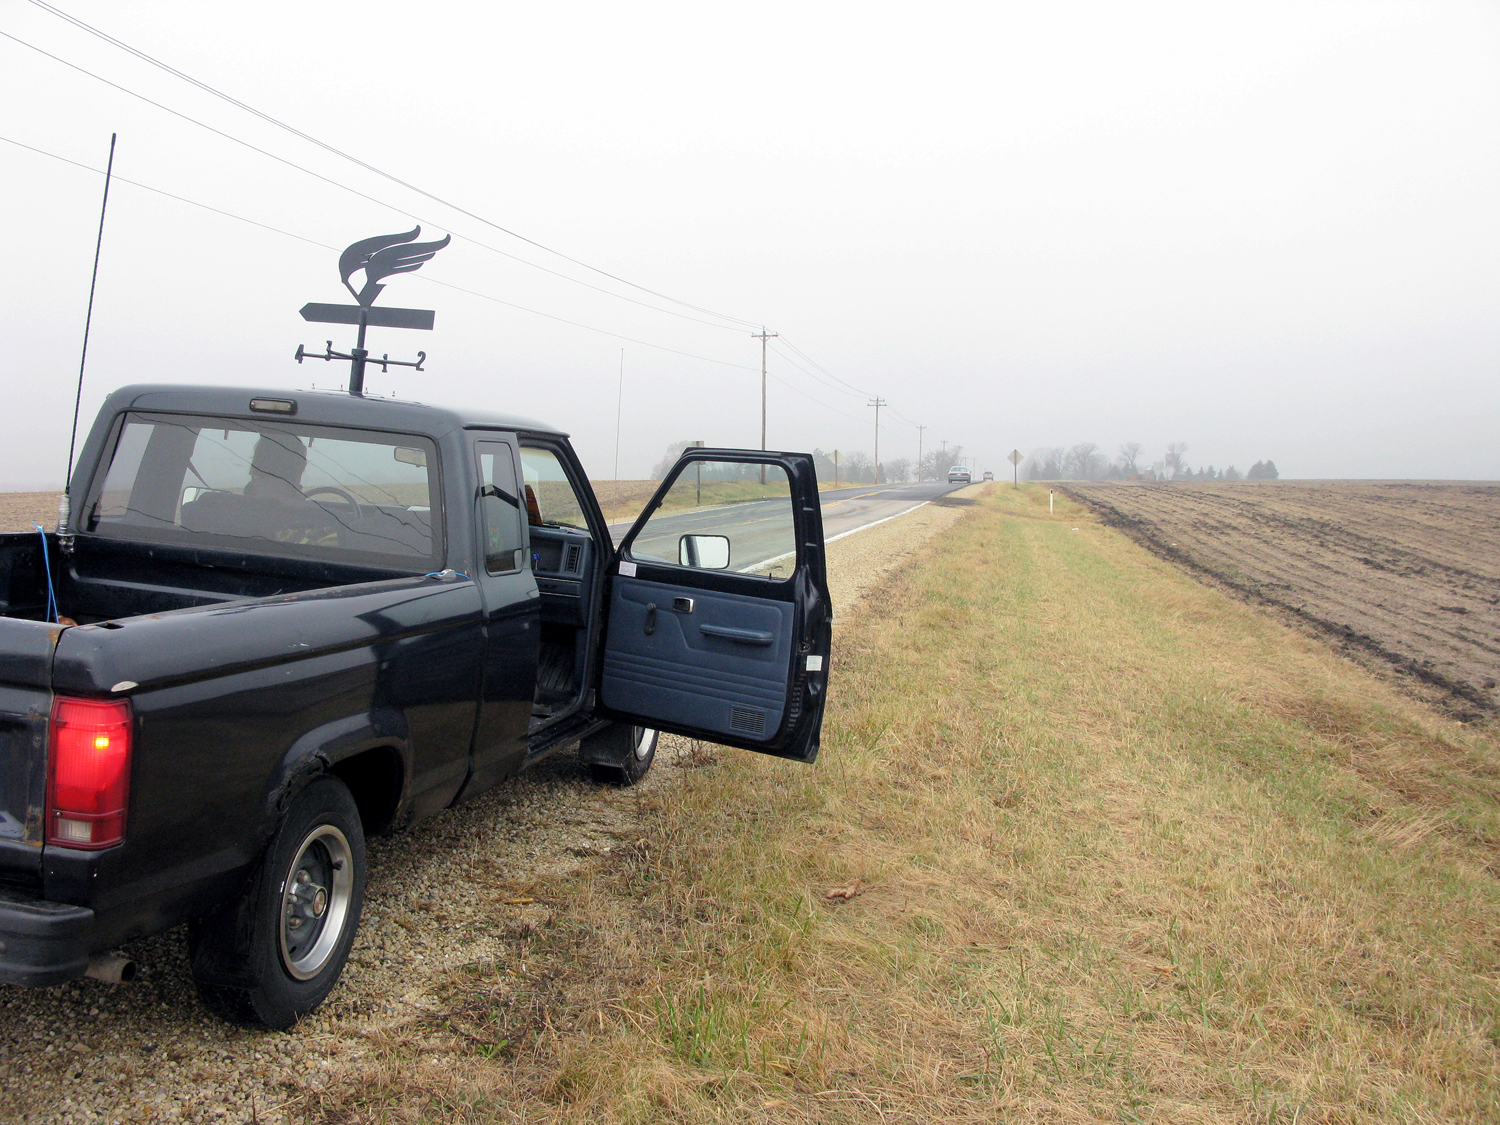 Blue Rider , 1986 Ford Ranger truck and weathervane, 2010 @Patrick Beaulieu  Photo by Alexis Pernet